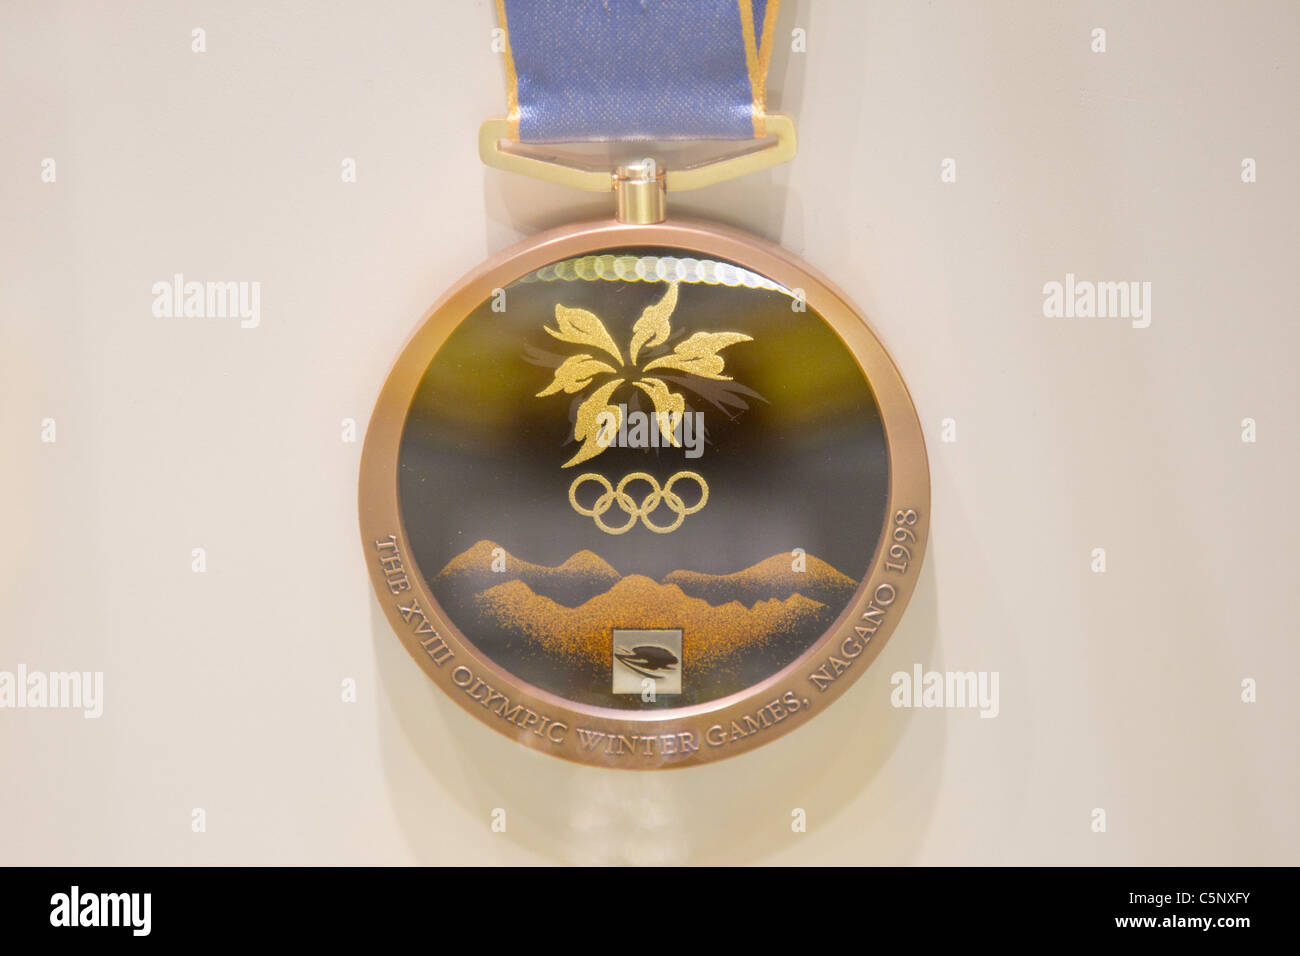 Bronze medal for Nagano winter Olympics : History of the Olympics in Japan. at Japan Mint in Osaka. - Stock Image